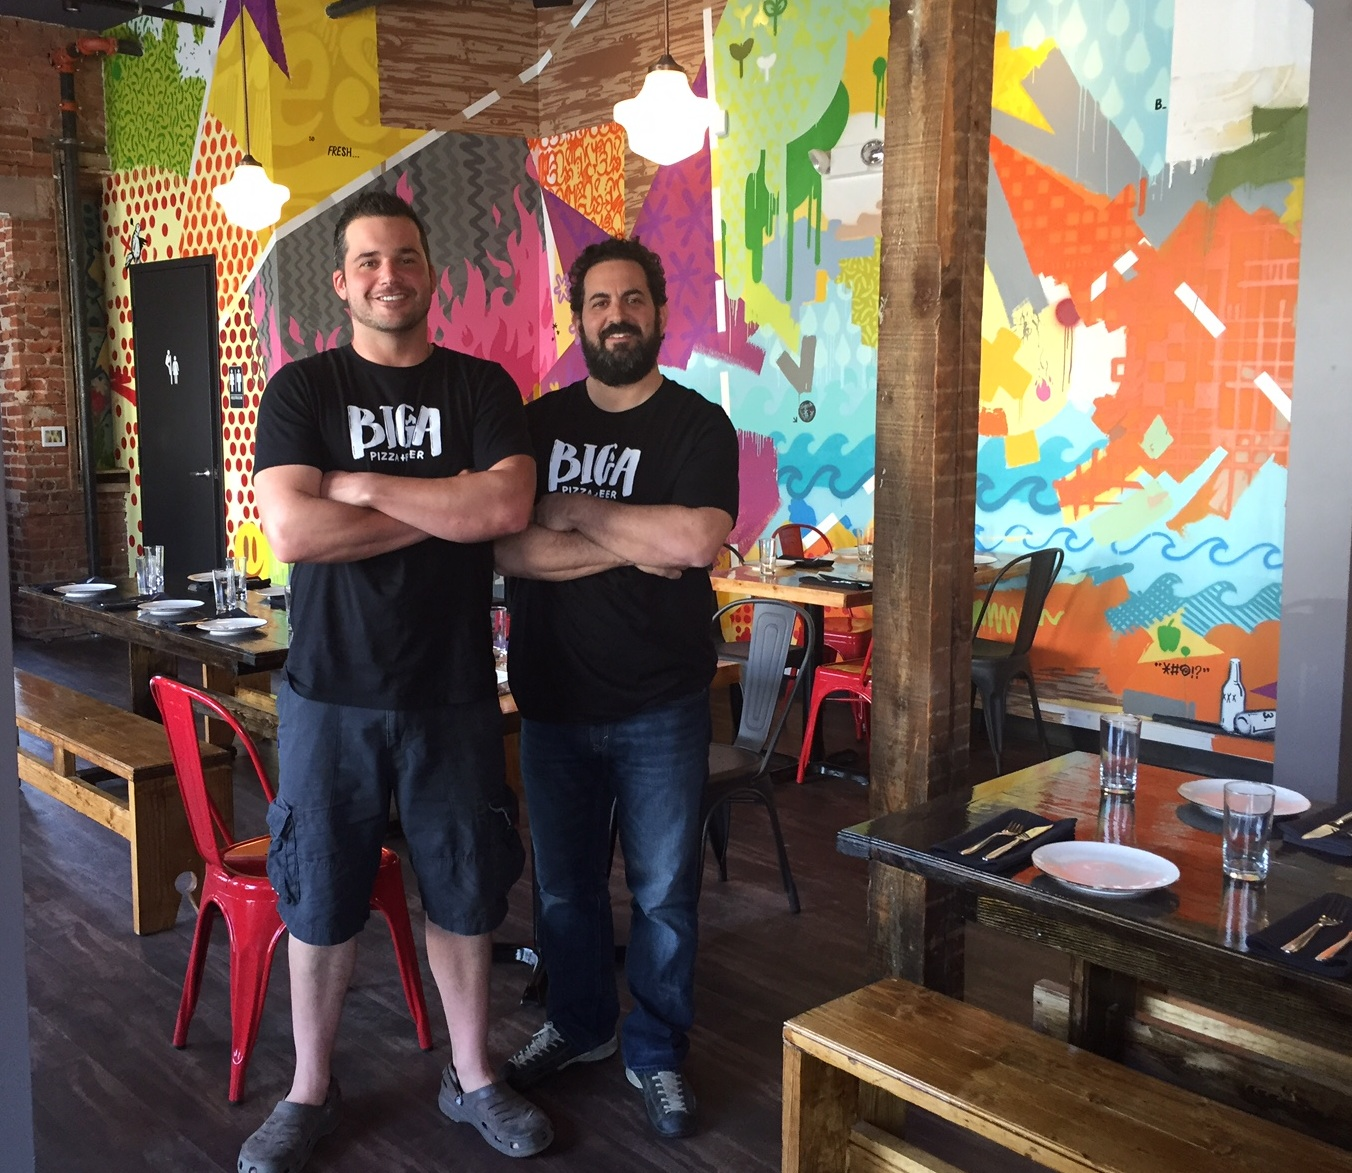 Top chefs at the new Biga: former Alba sous chef Steve Fulmer and Alba chef-owner Sean Weinberg. The space is industrial/grunge cool: exposed brick walls, hand-made trestle tables and a killer mural by Philly artist Ntel.